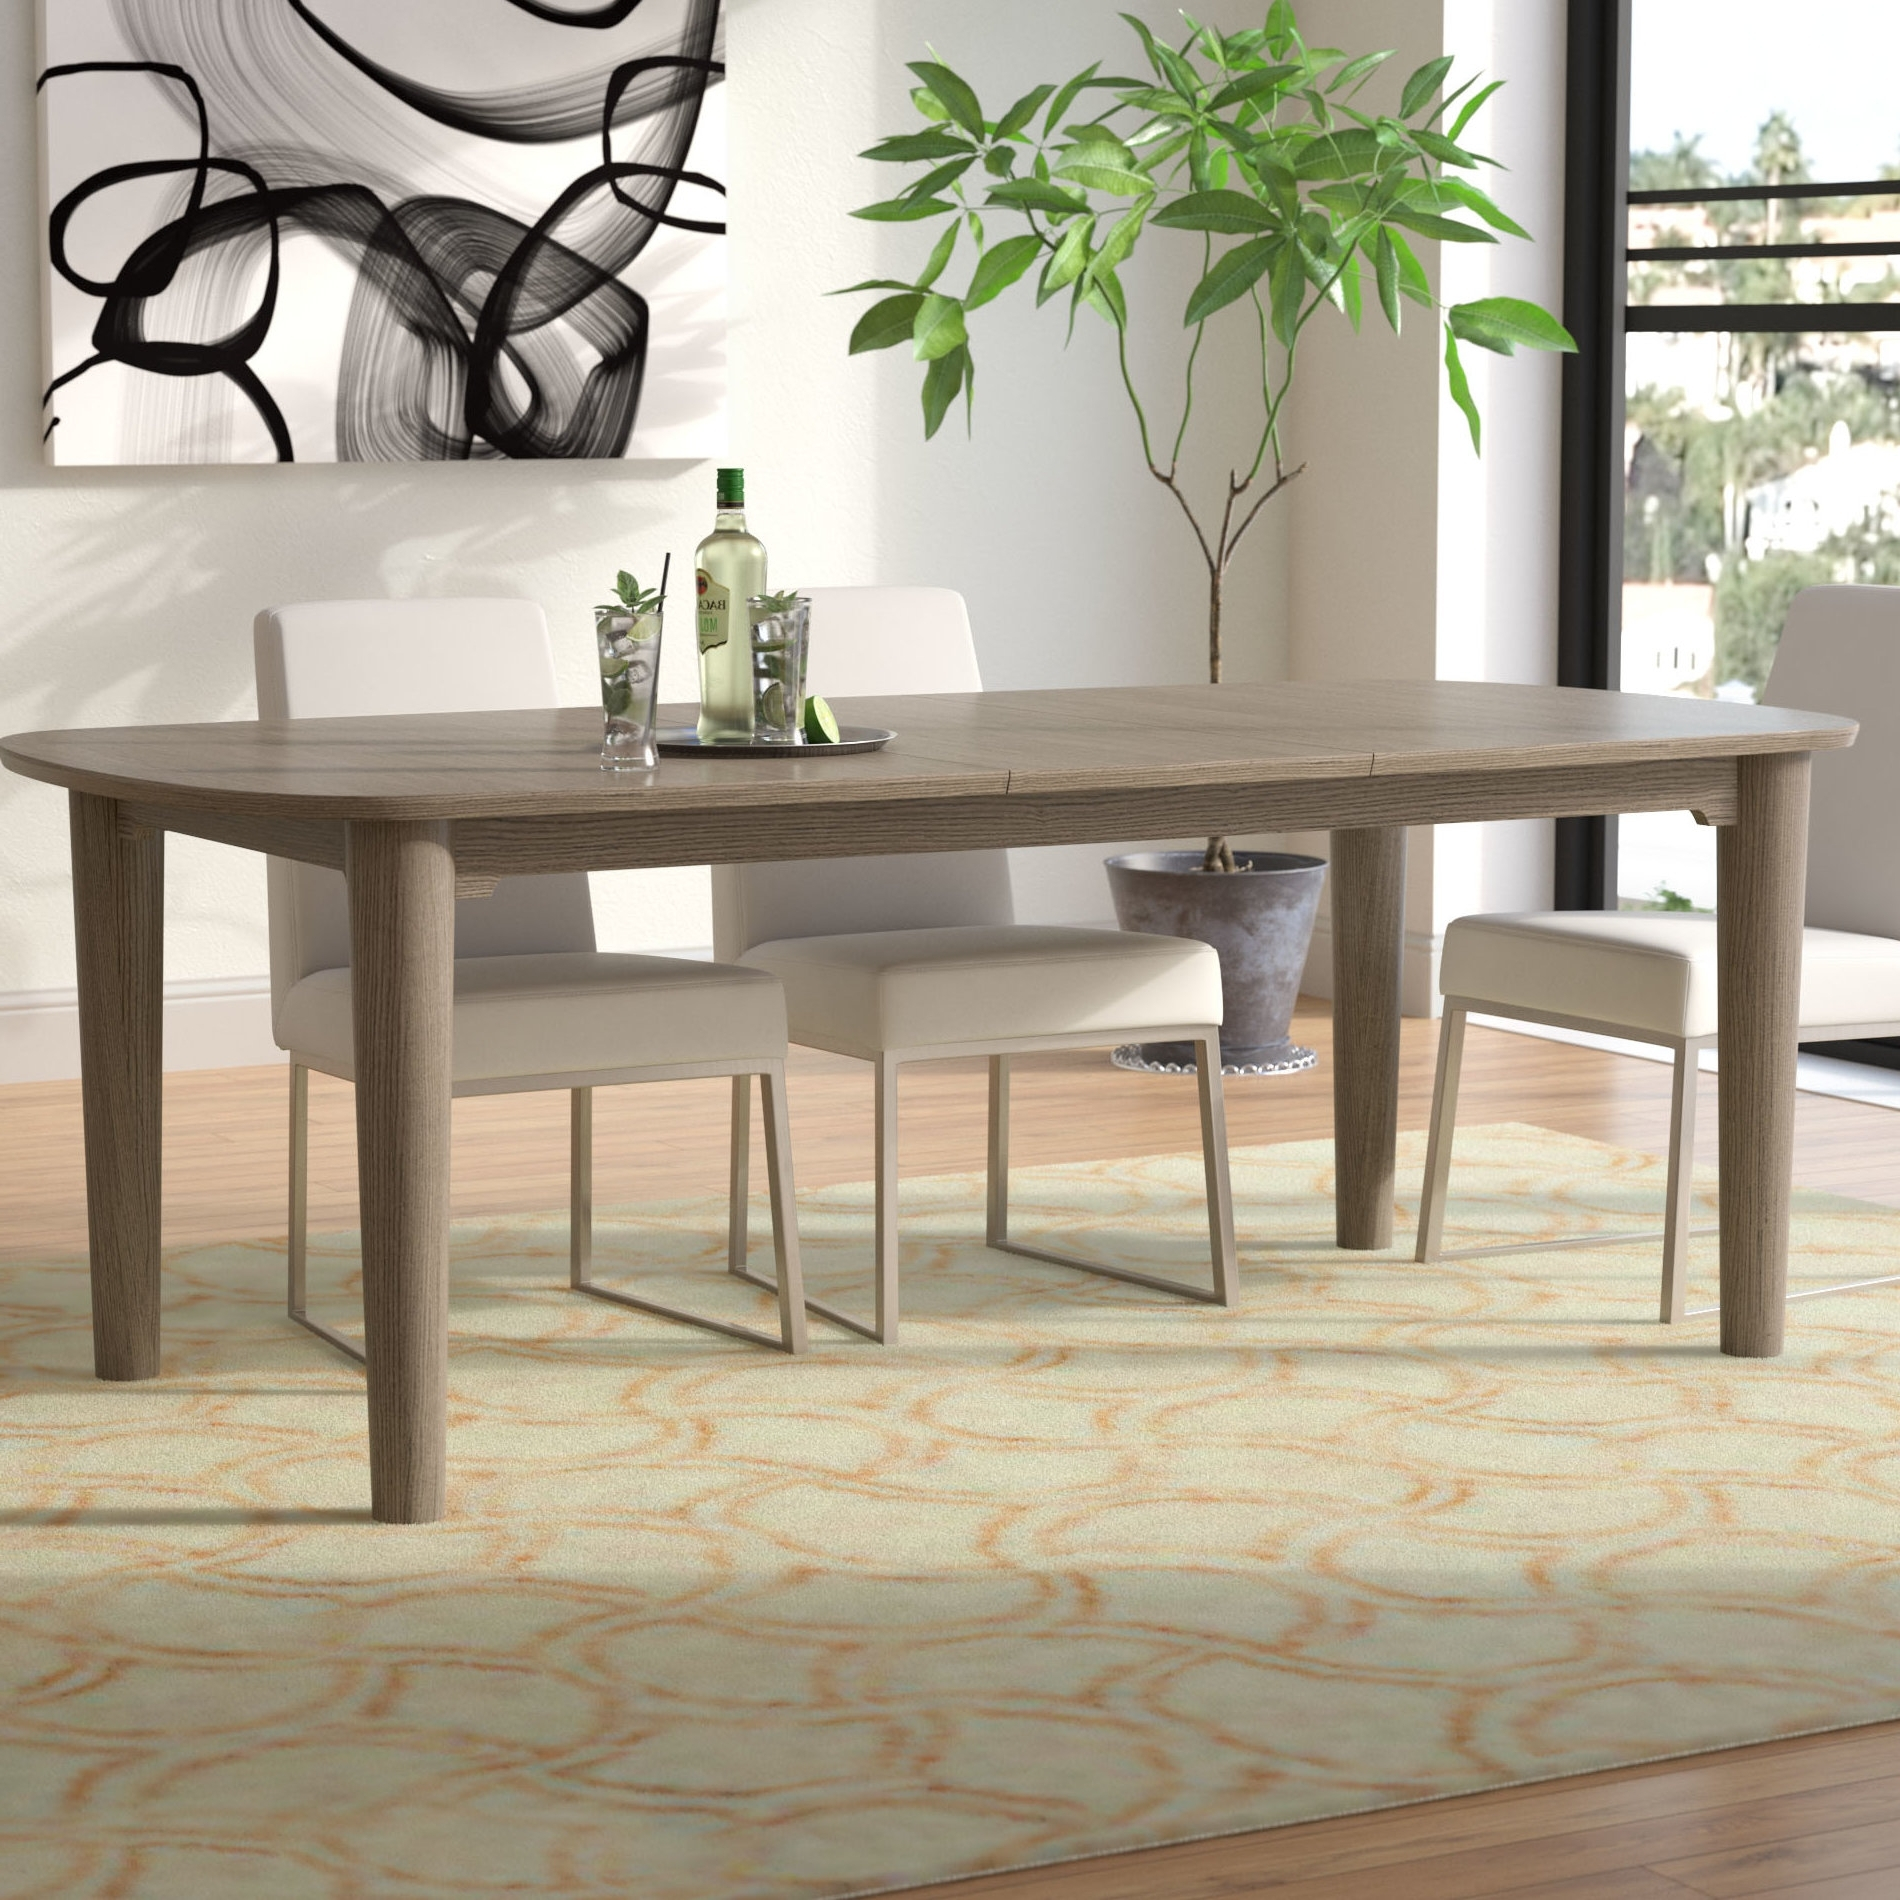 Enrique Extendable Dining Table Pertaining To Most Current Extendable Dining Sets (View 6 of 25)